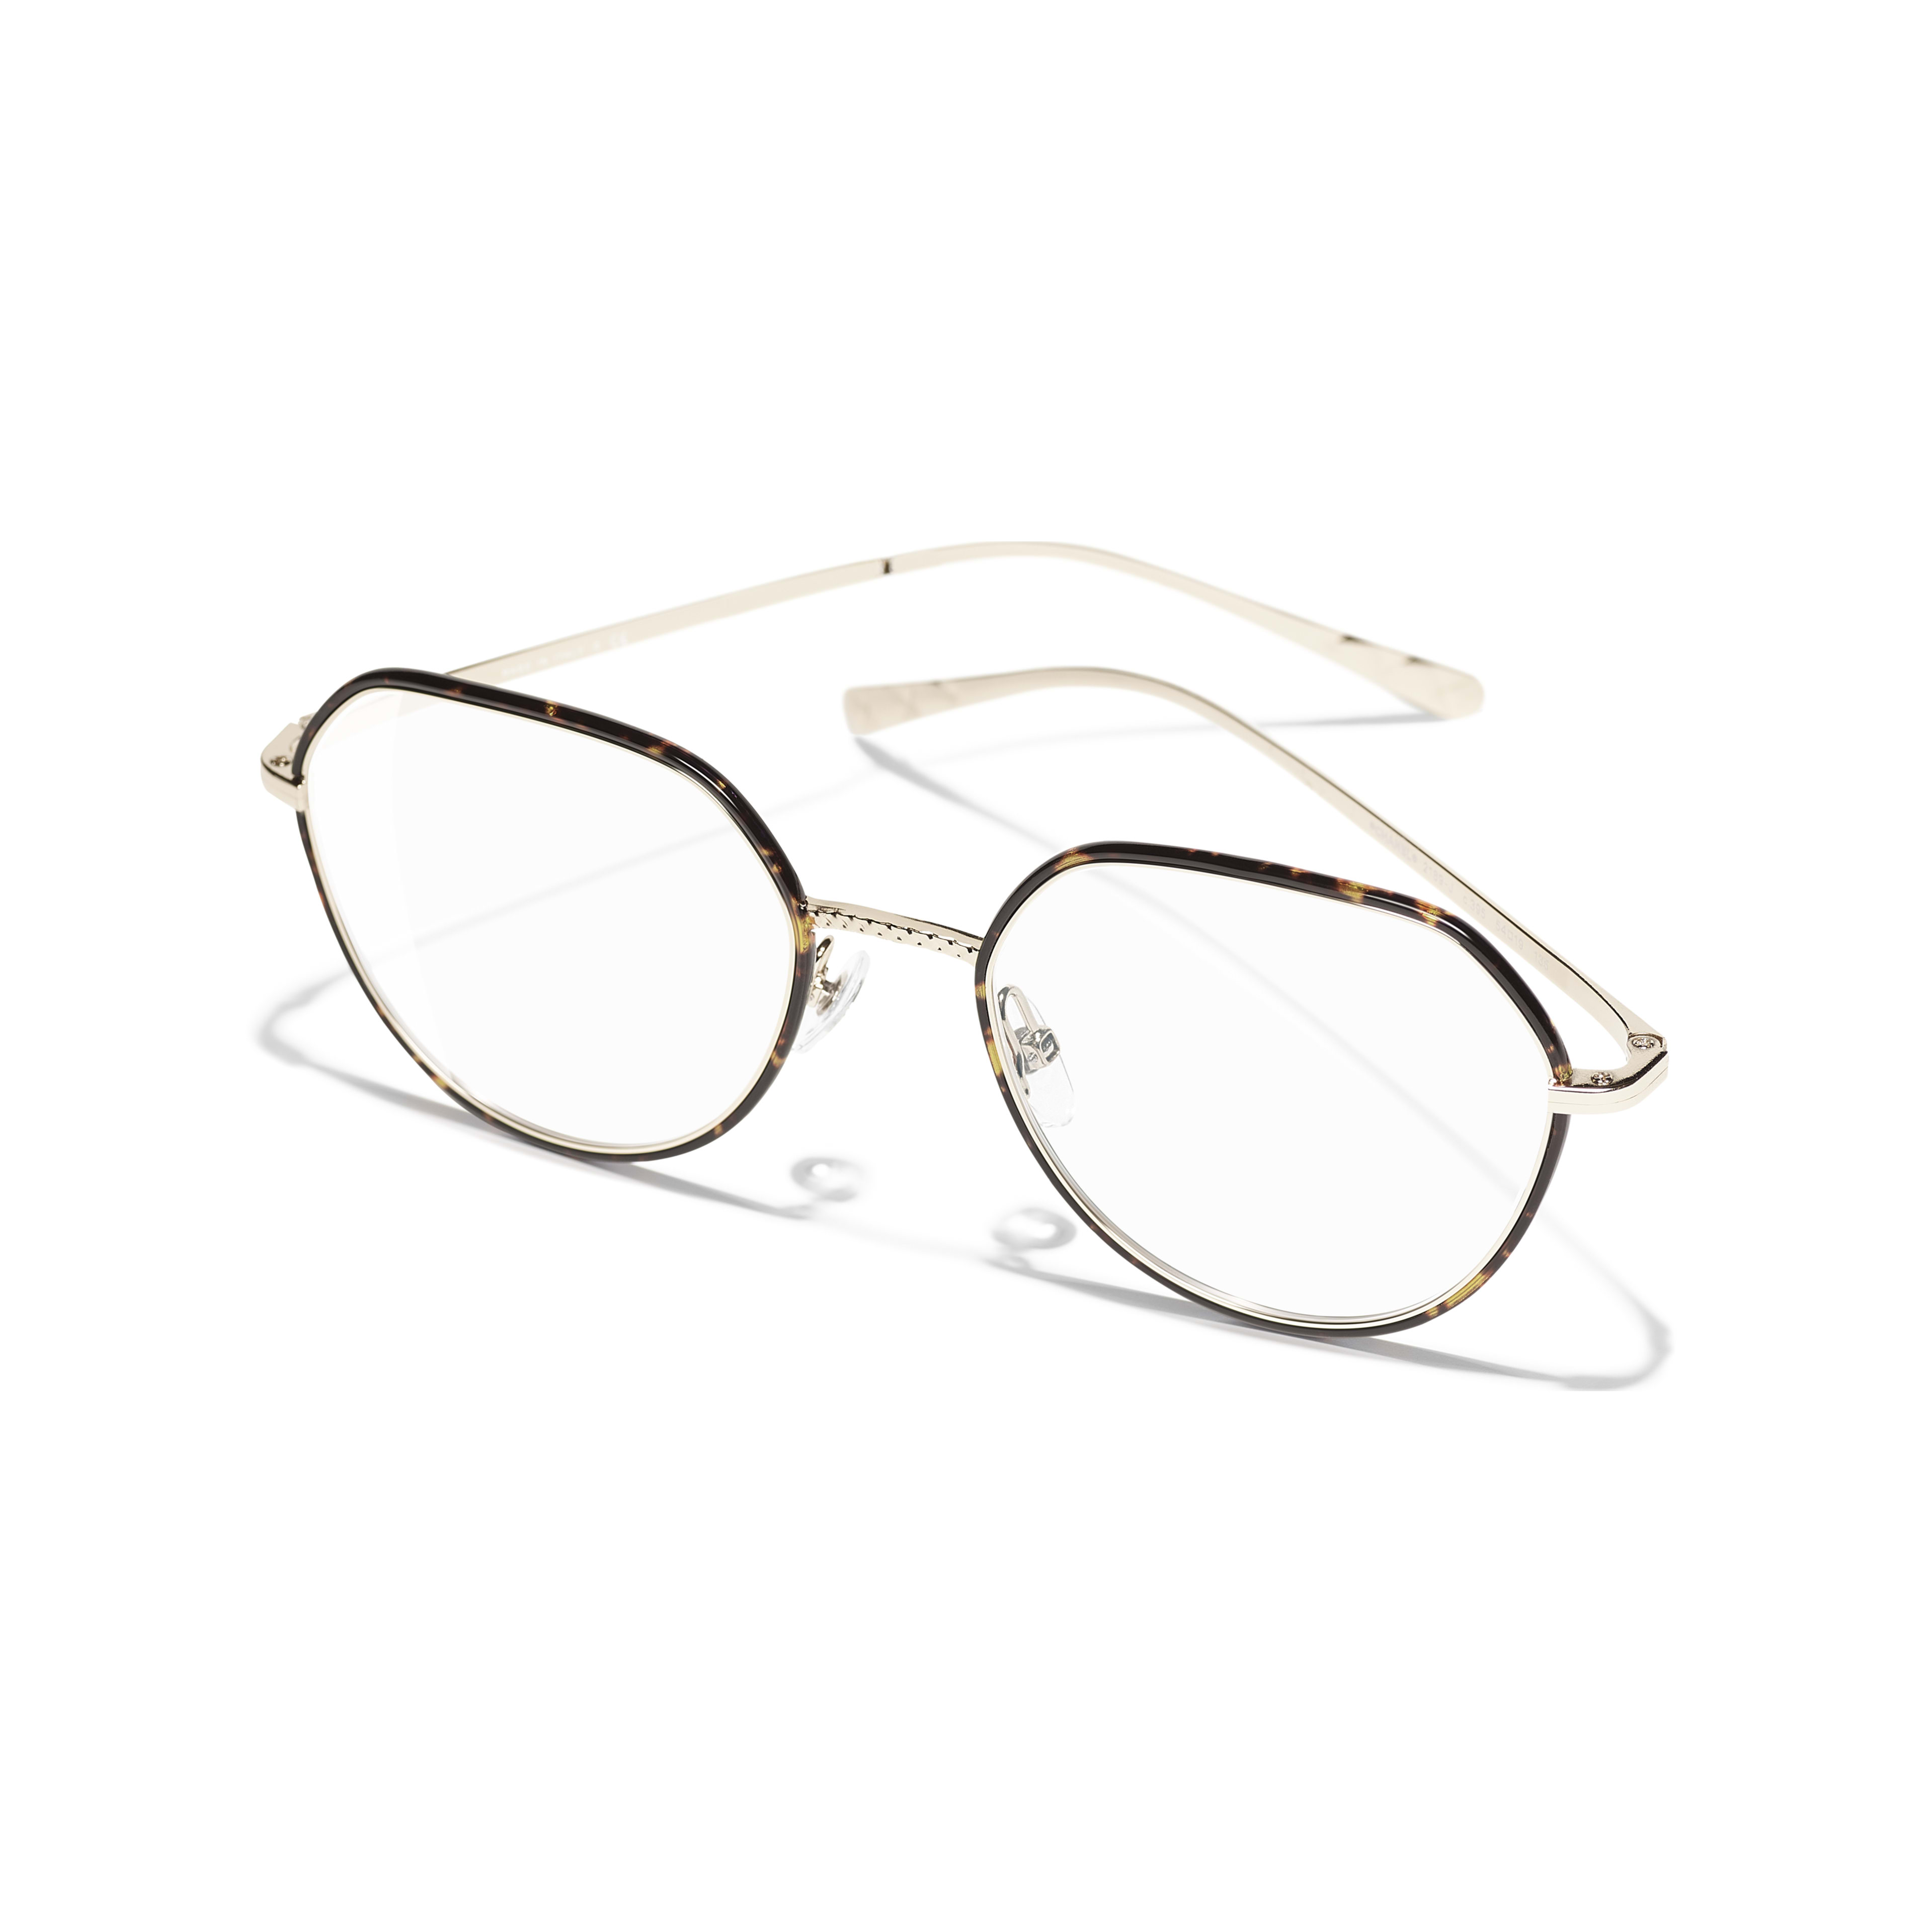 Round Eyeglasses - Gold & Tortoise - Metal - CHANEL - Extra view - see standard sized version